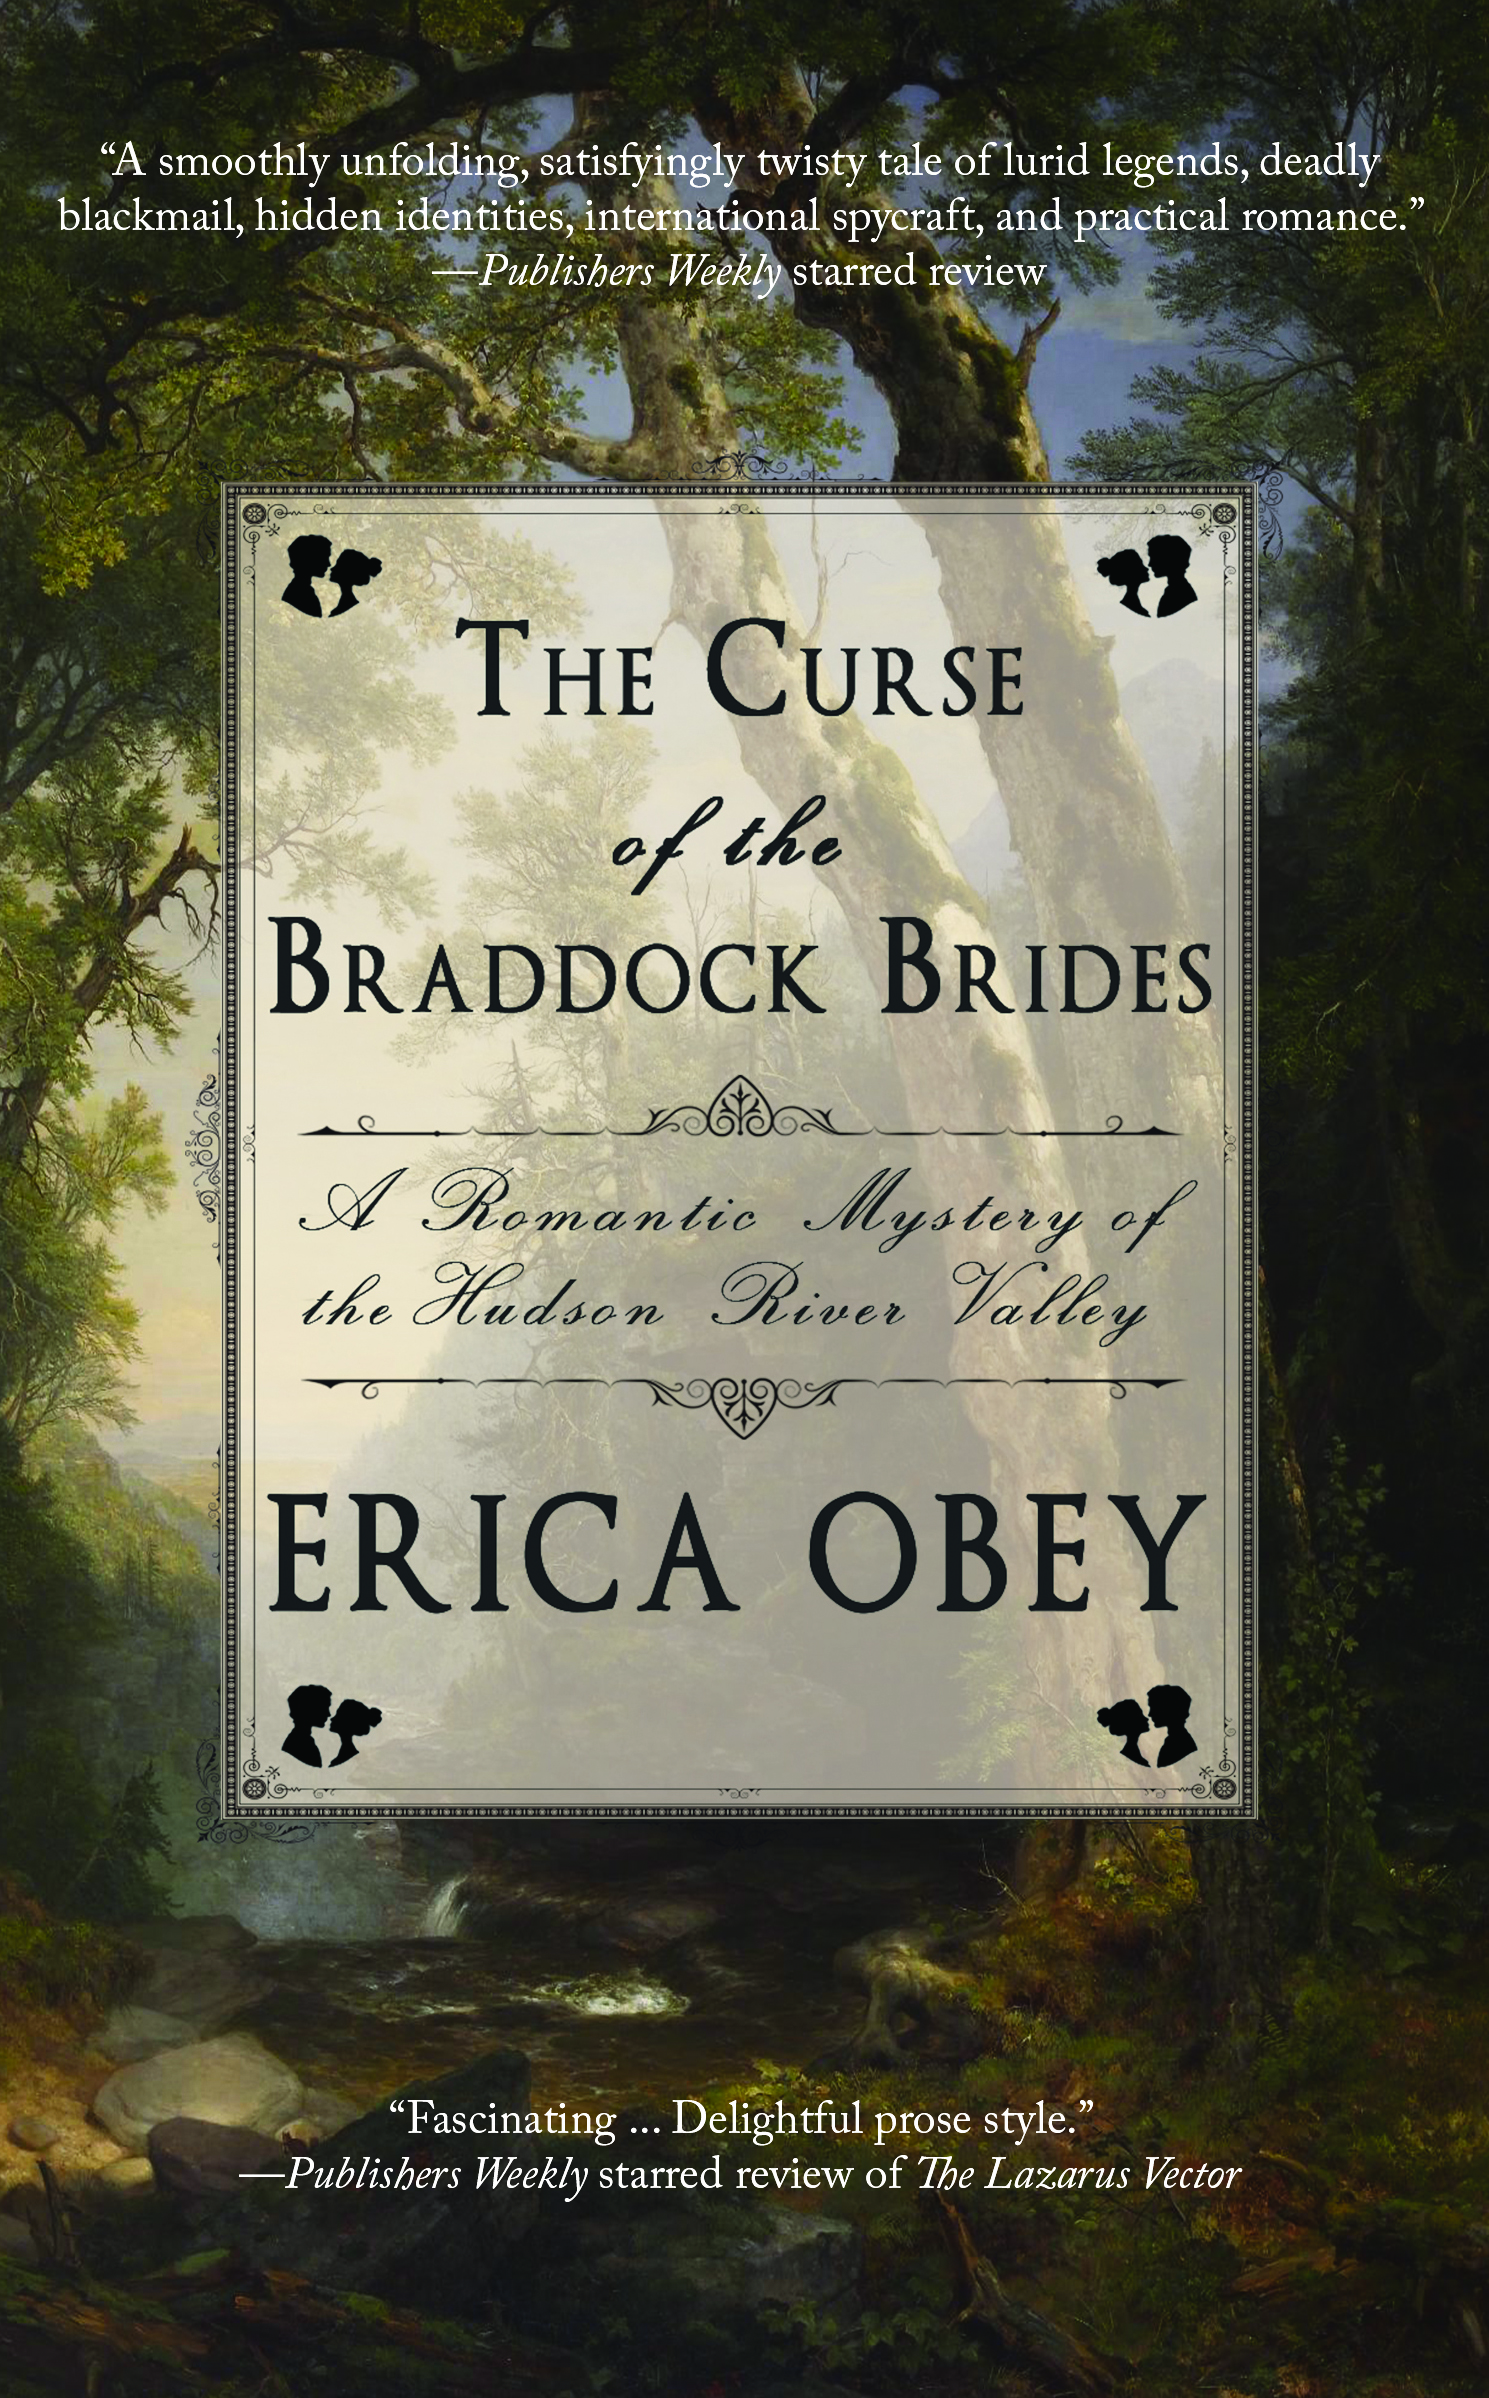 The Curse of the Braddock Brides